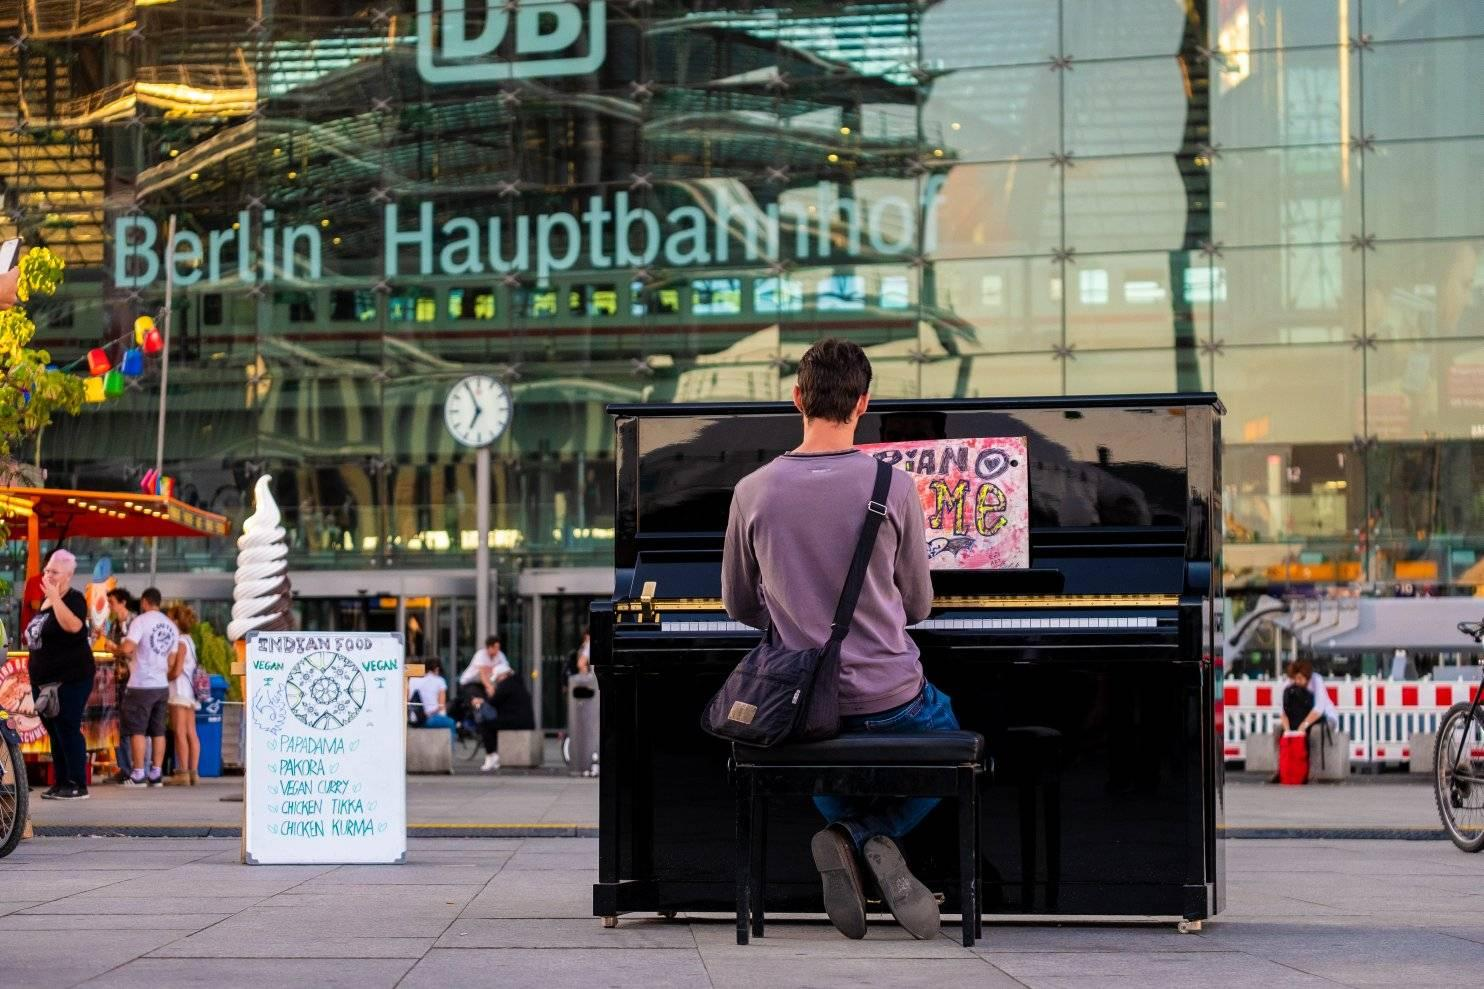 Streetpiano Washingtonplatz